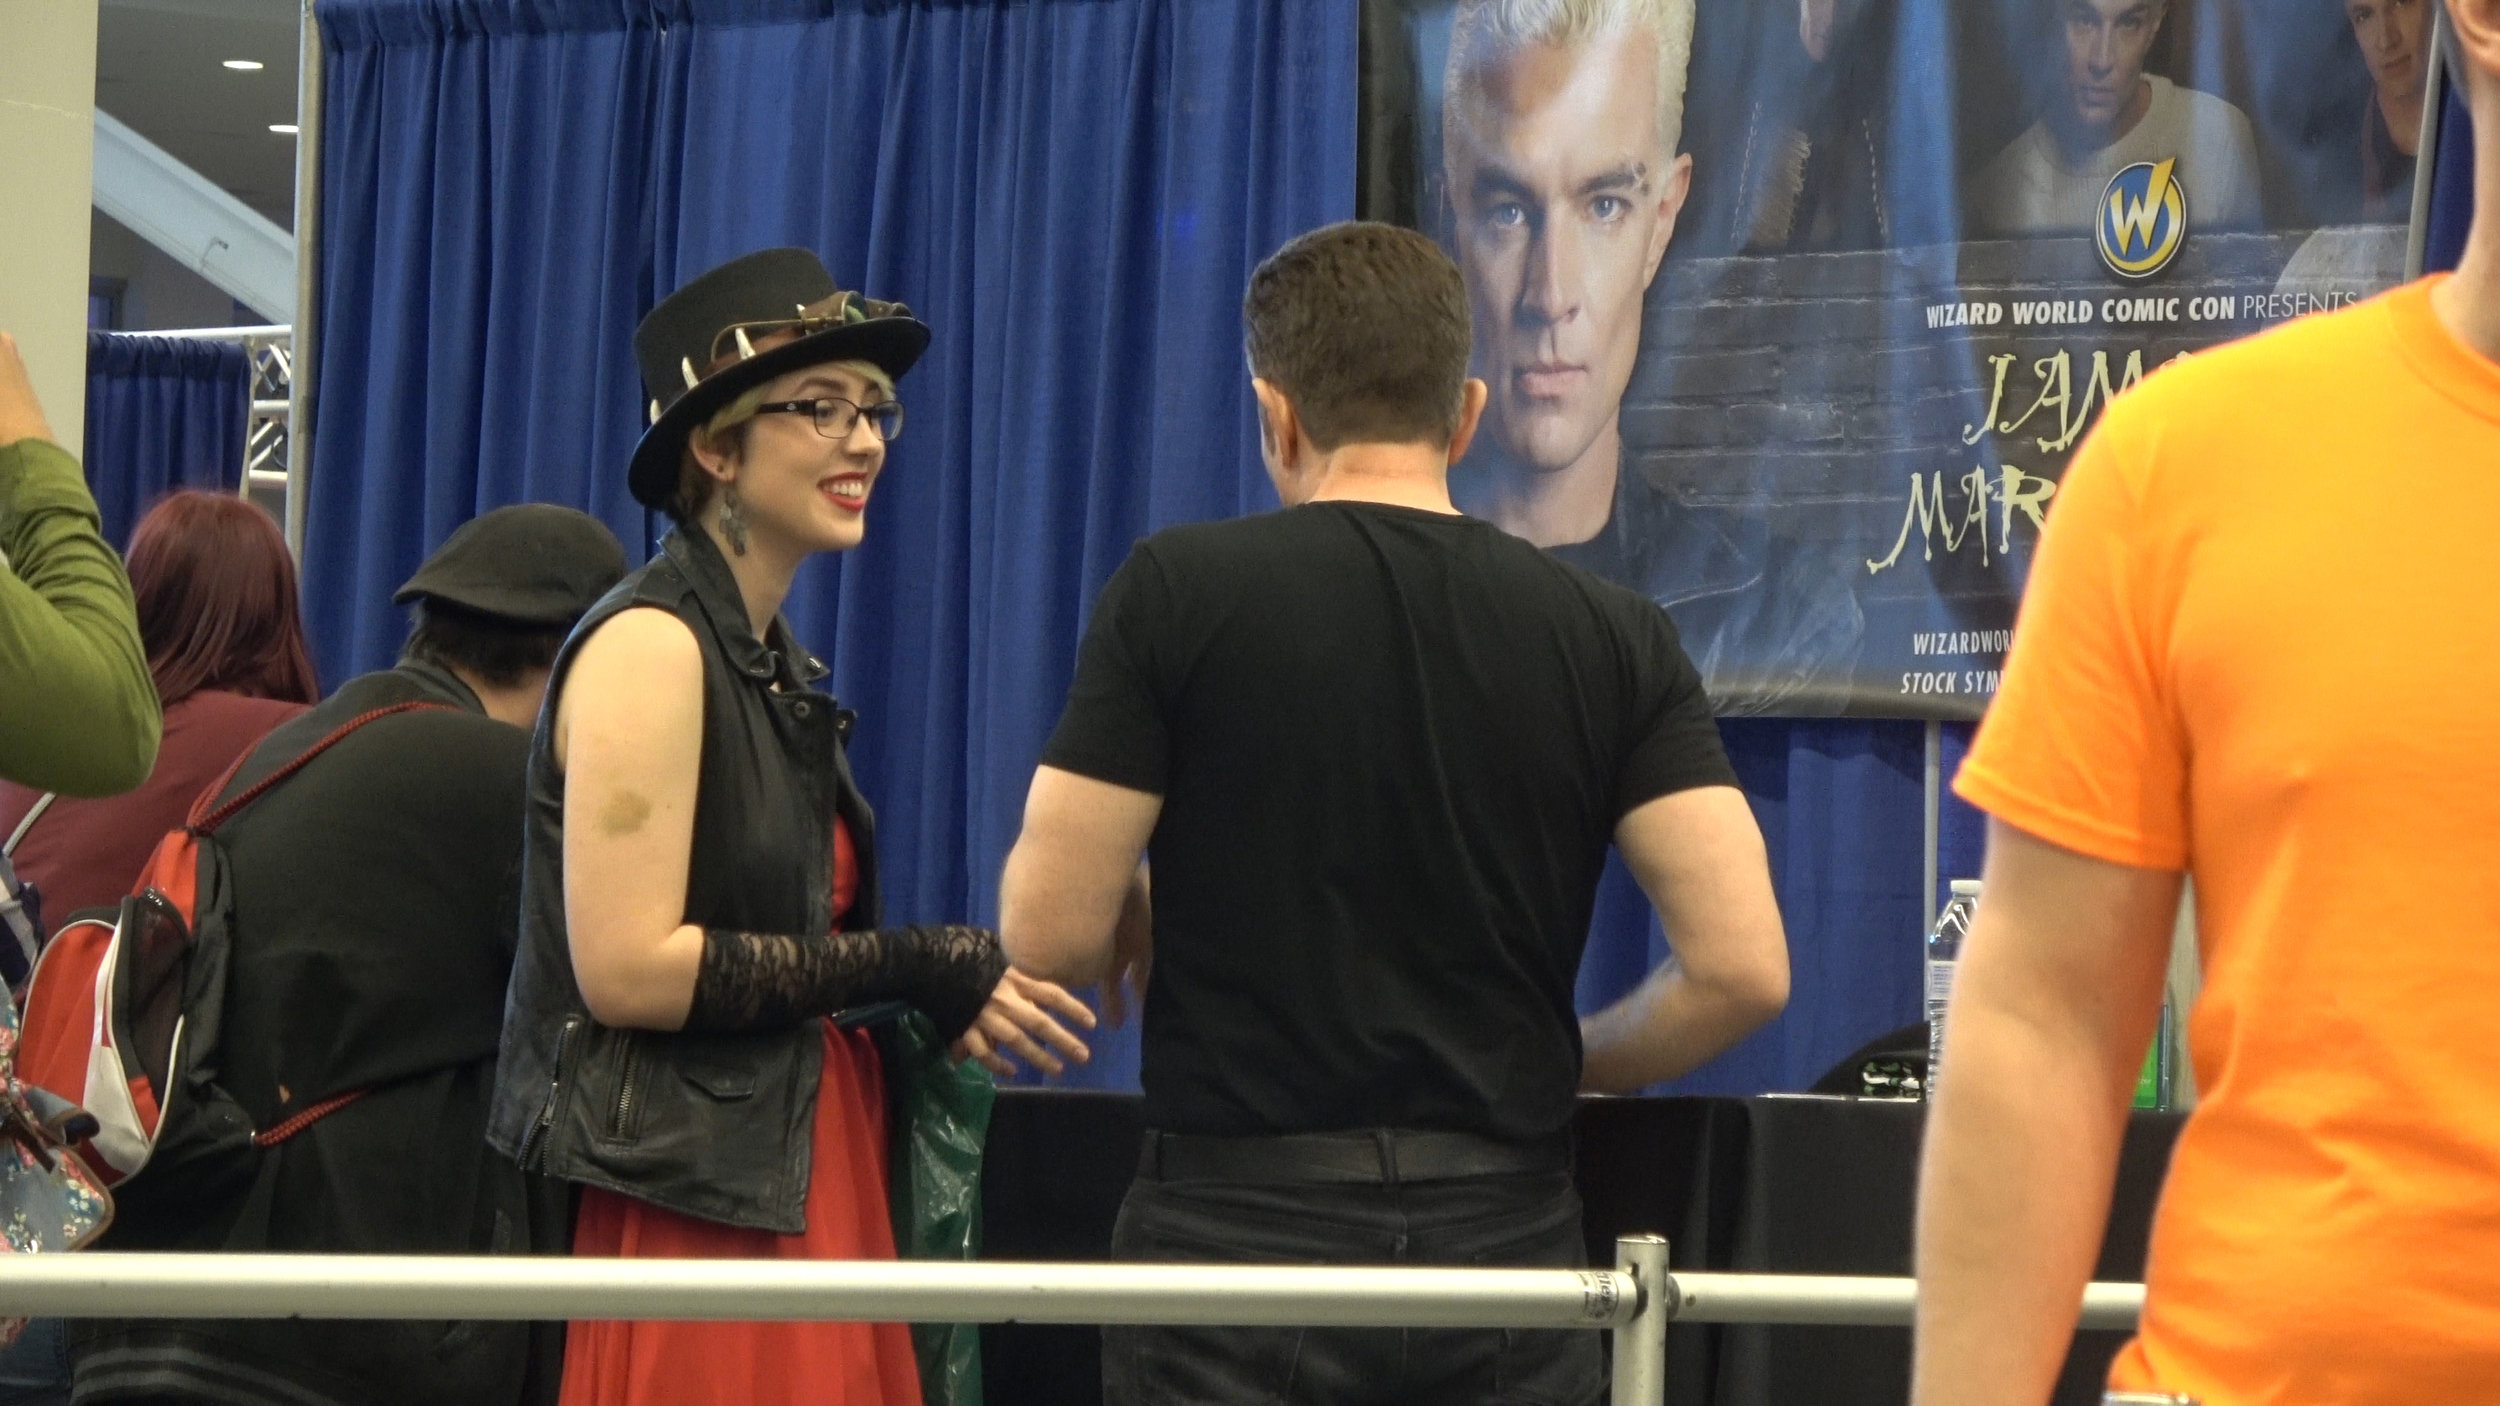 This is Becca's 2nd time meeting James Marsters, after we filmed a cameo with him in 2015 for Billie Bob Joe